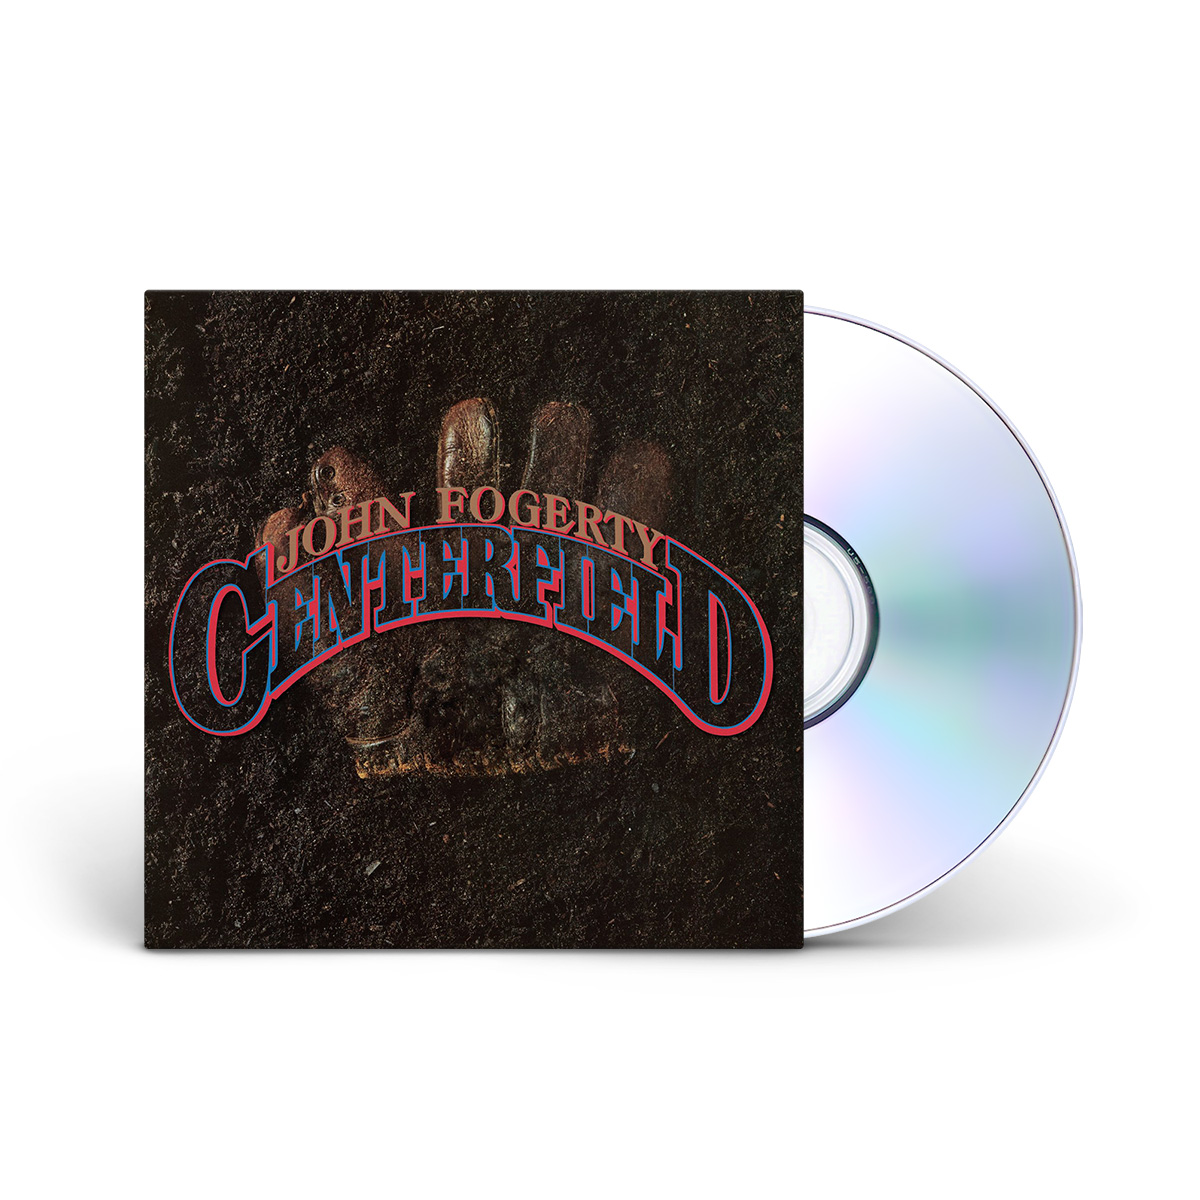 John Fogerty - Centerfield CD